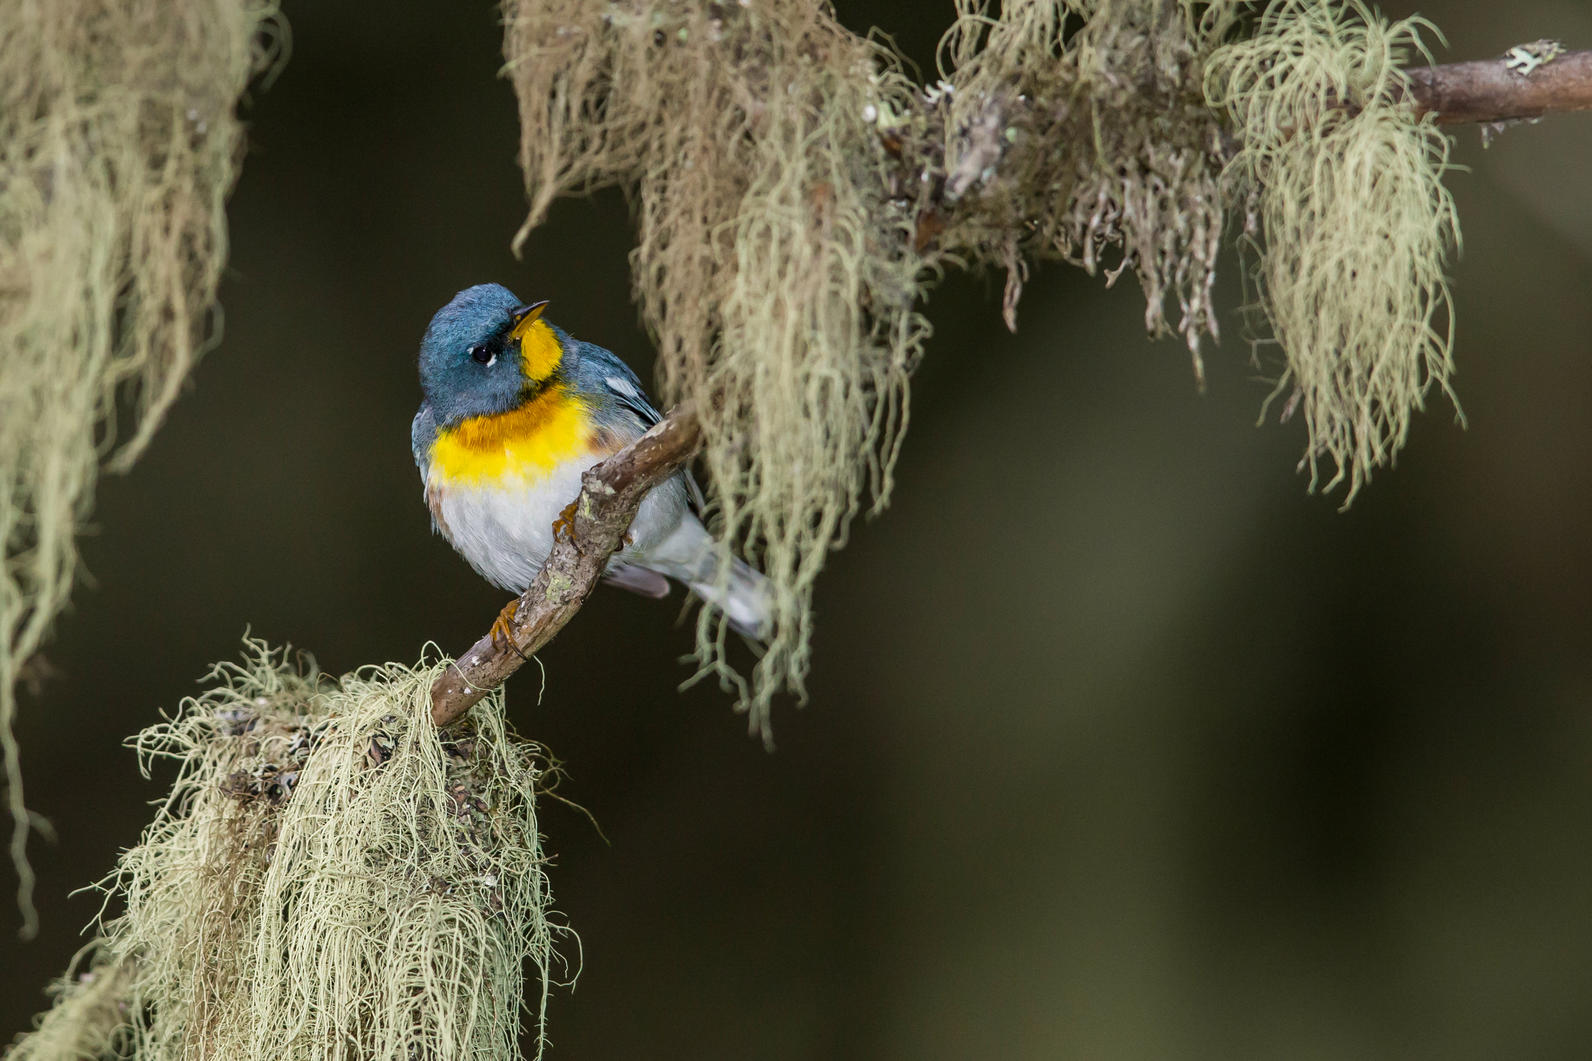 Northern Parula. Photo: Arni Stinnissen/Audubon Photography Awards.